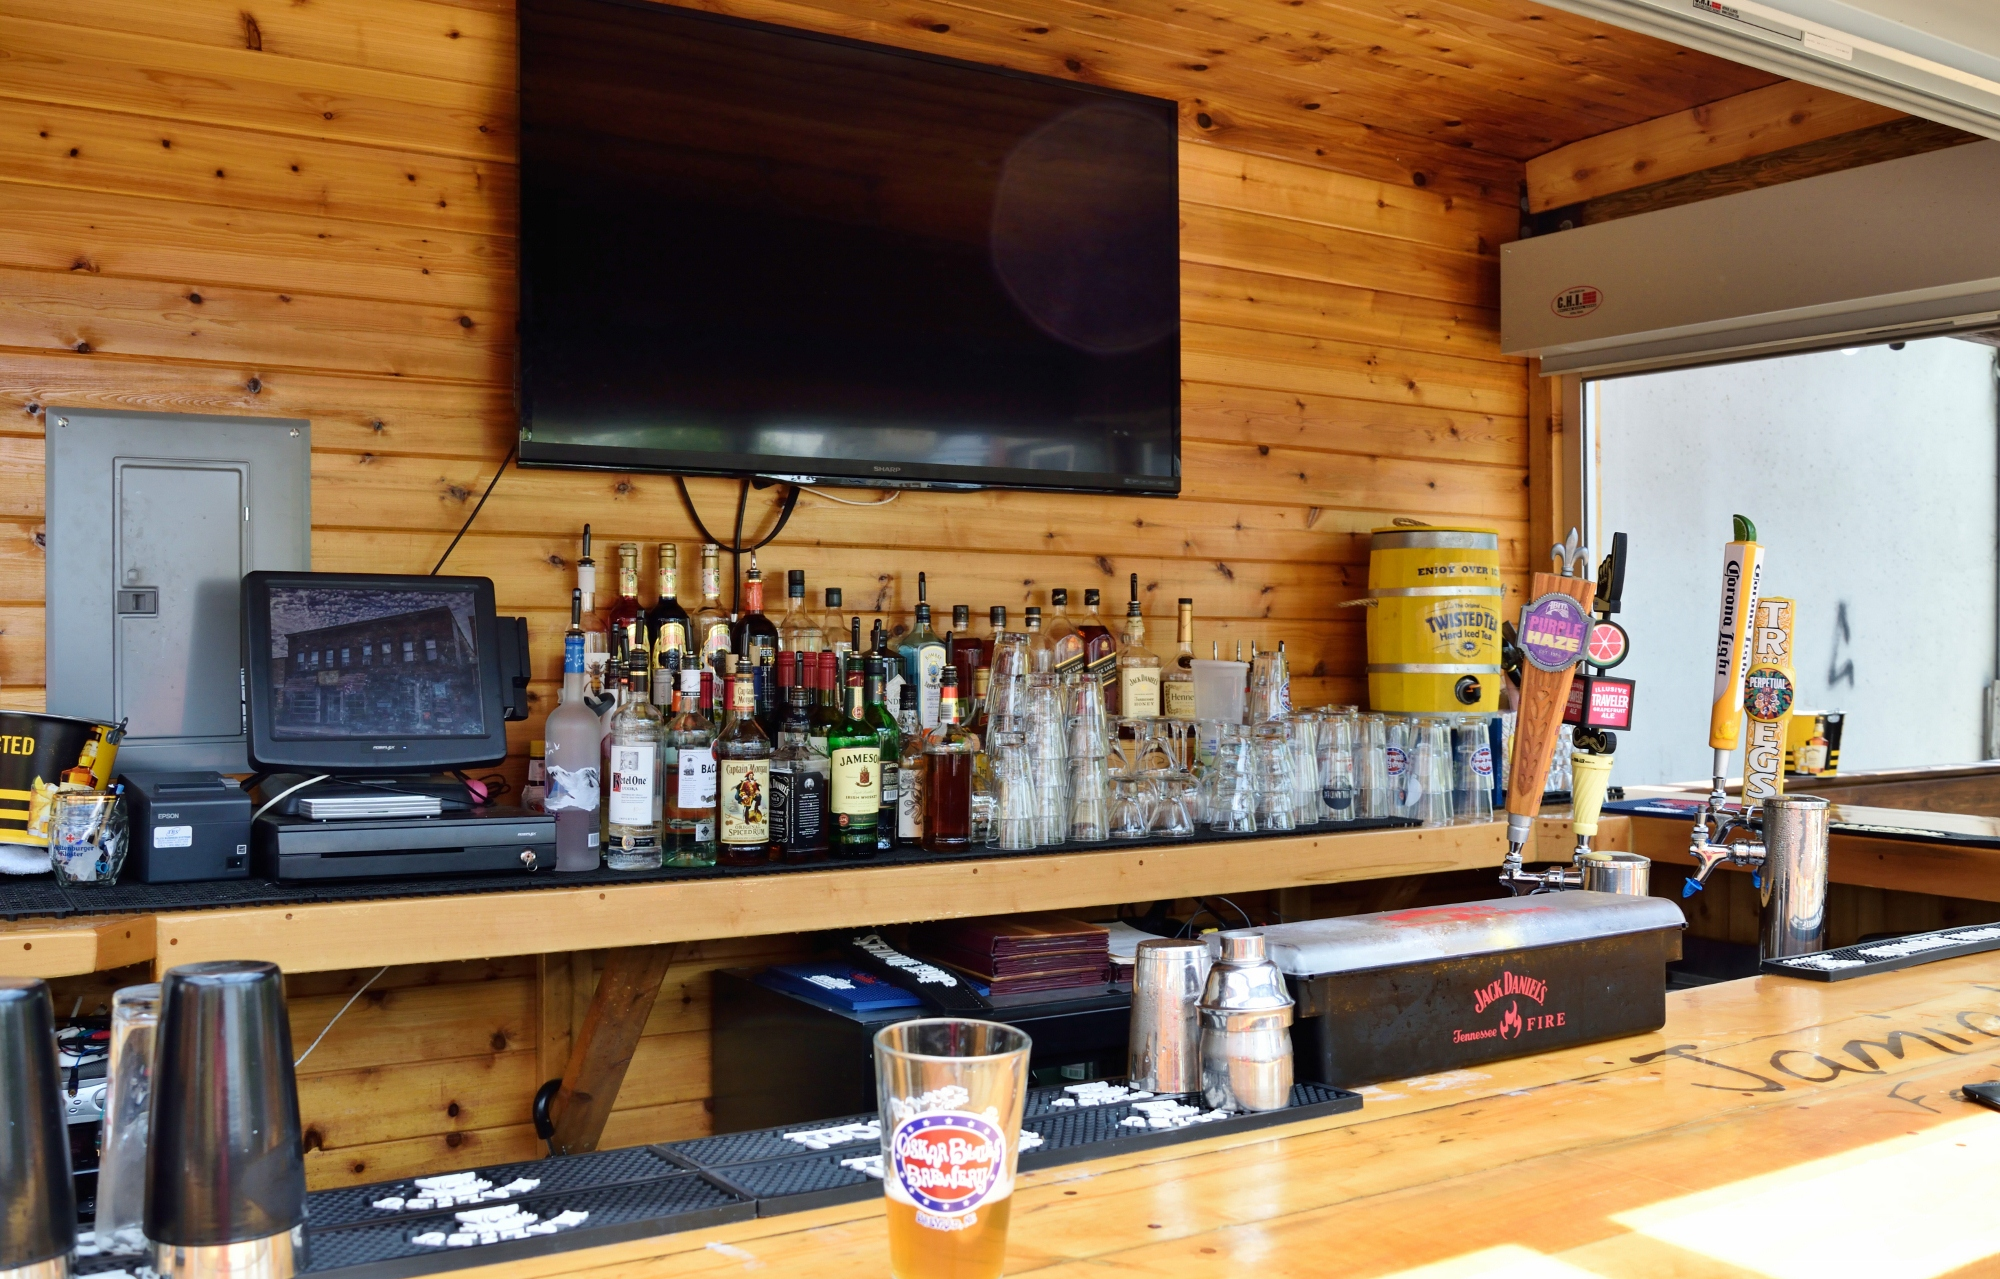 Fewer taps than their inside bar, but you have access to everything even if you are outside.